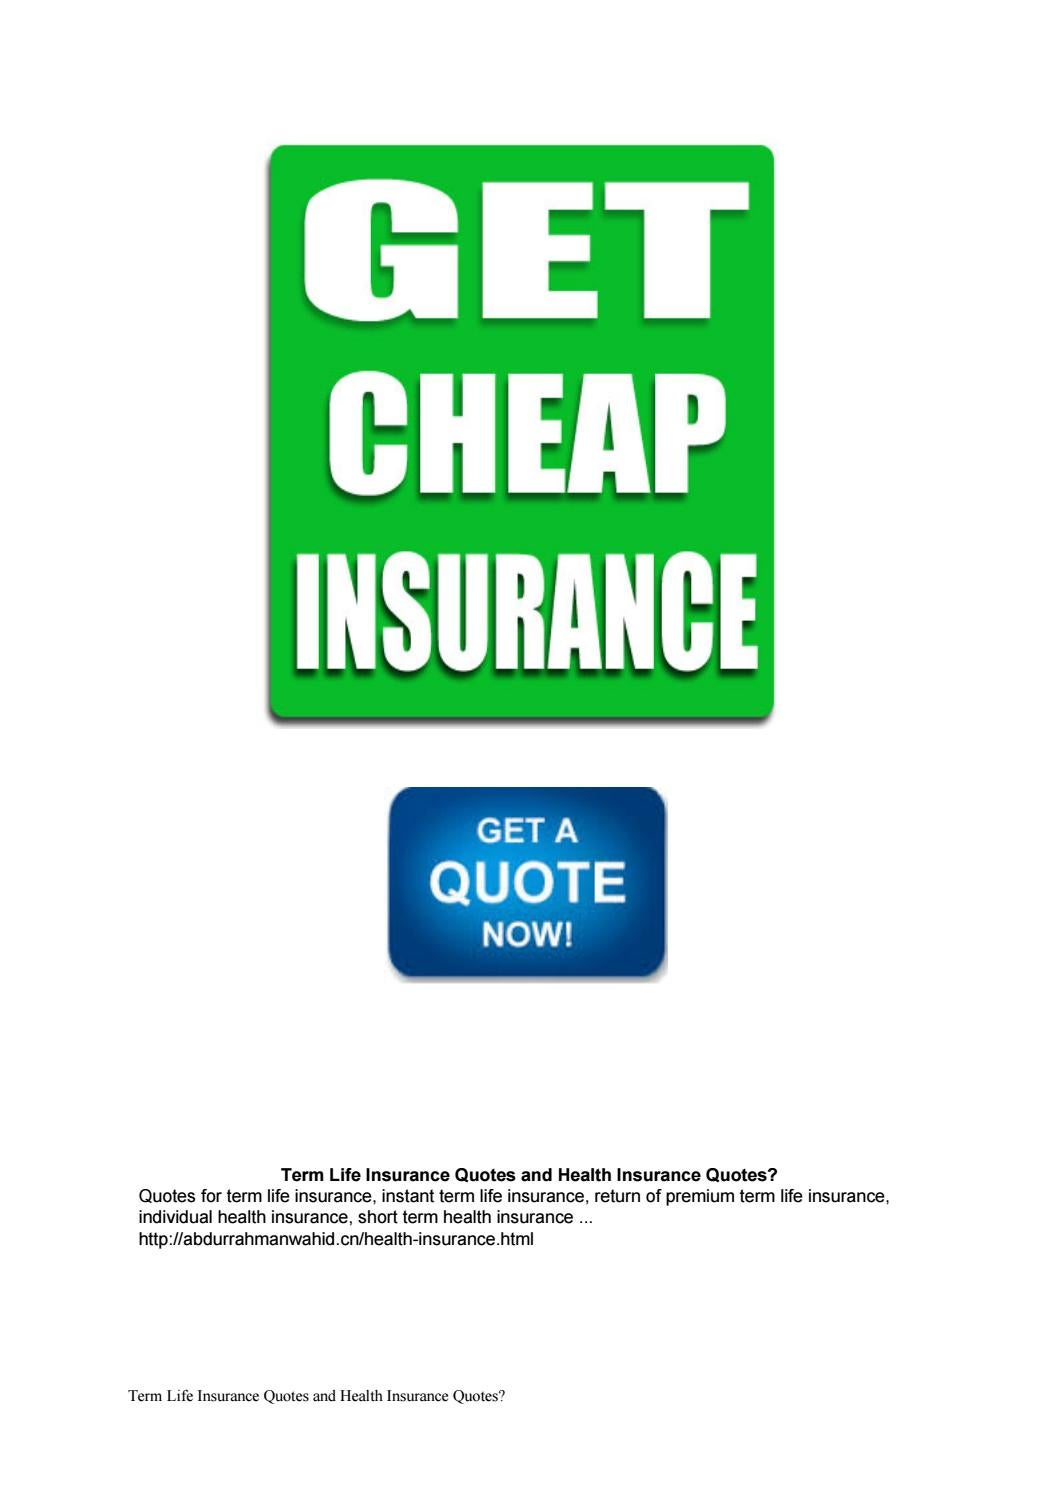 Instant Term Life Quotes Term Life Insurance Quotes And Health Insurance Quotes.